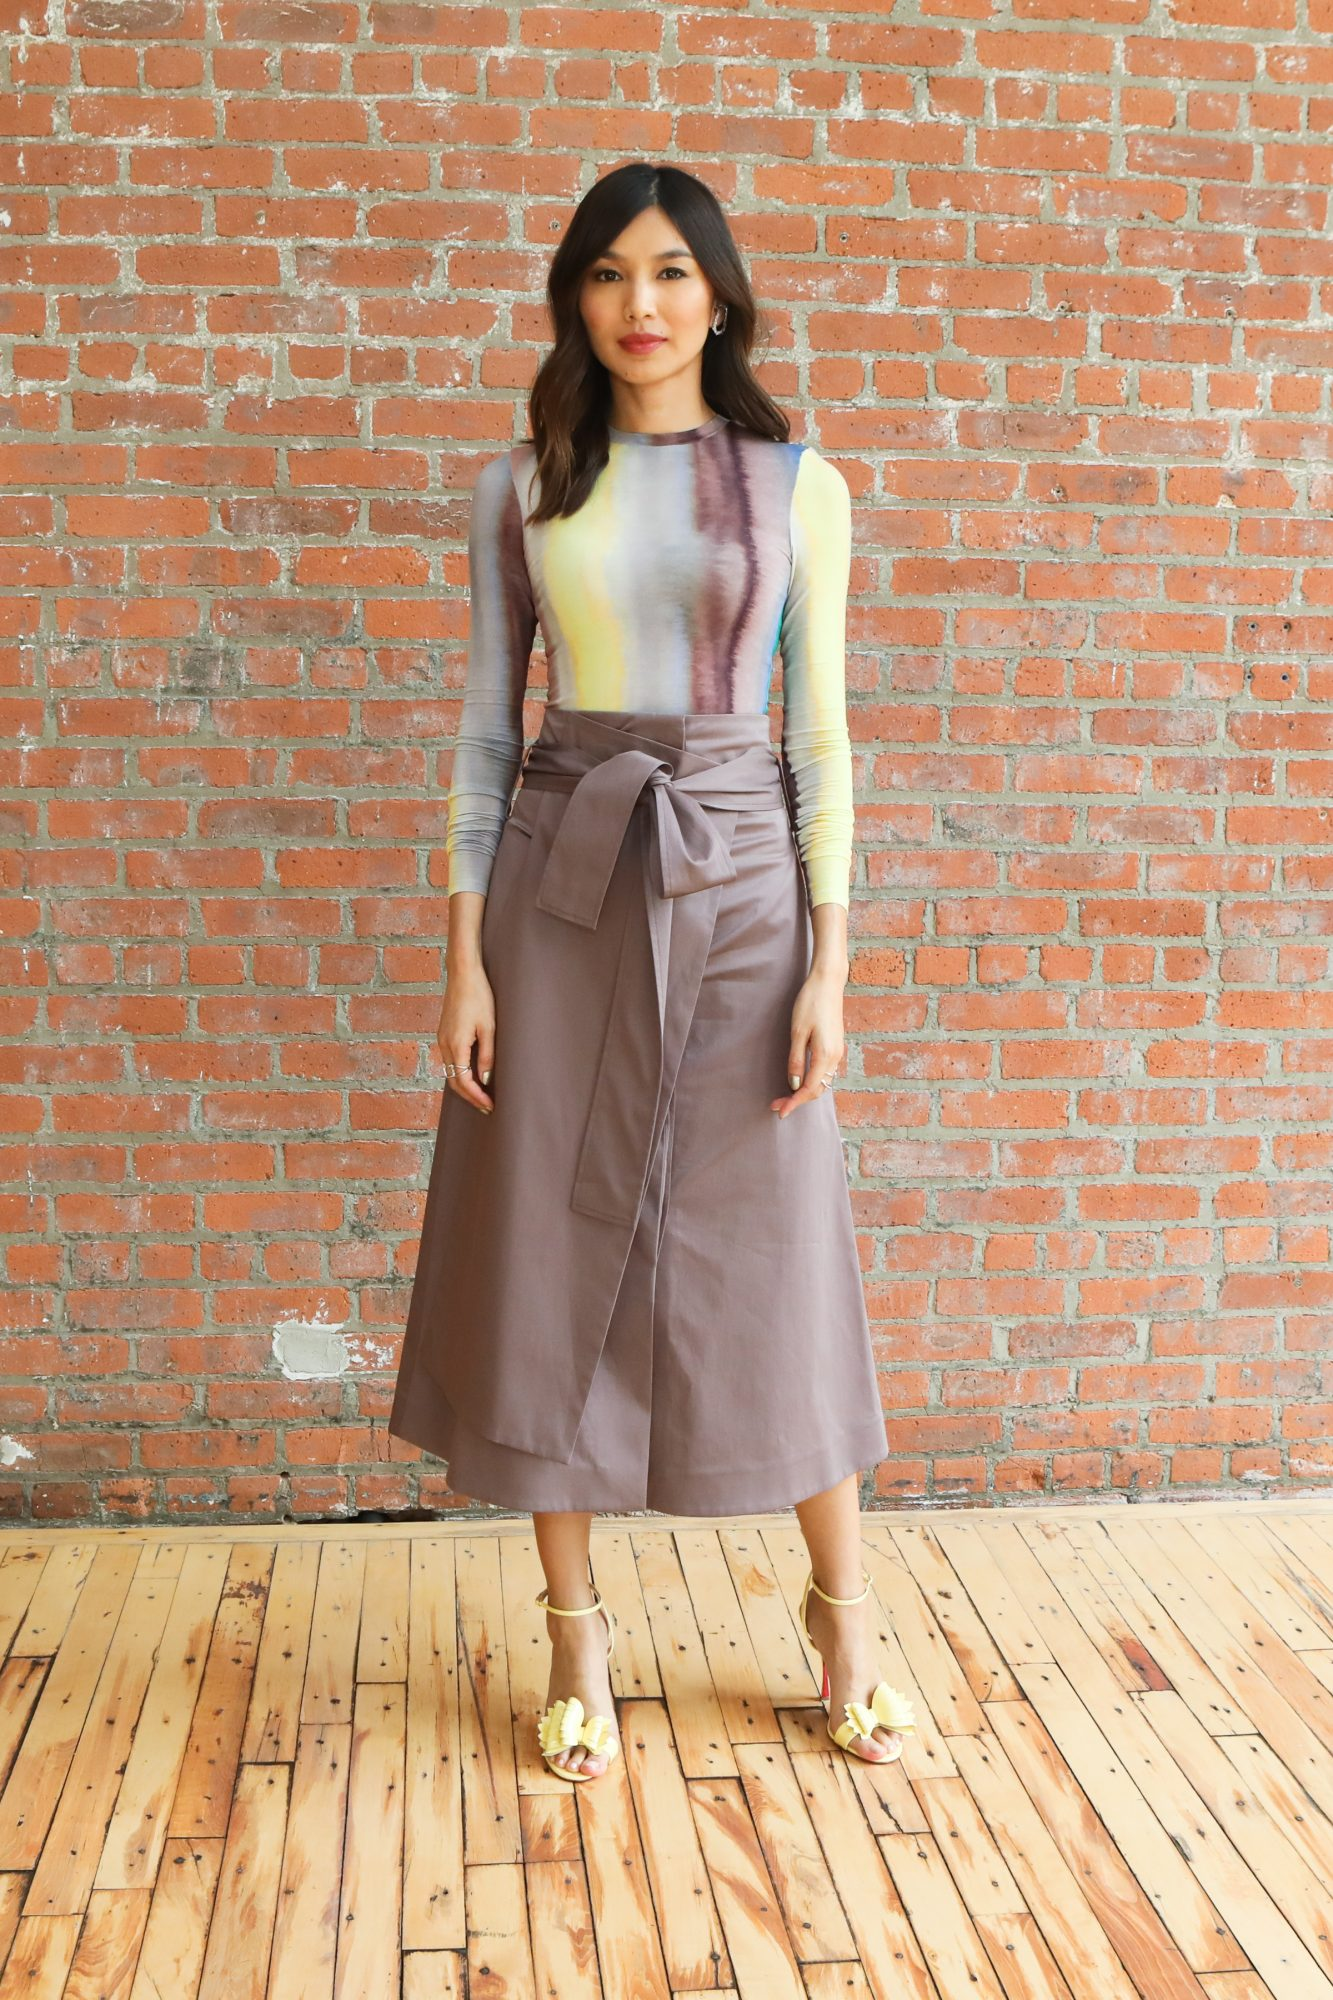 Gemma Chan at Beacon event/COS